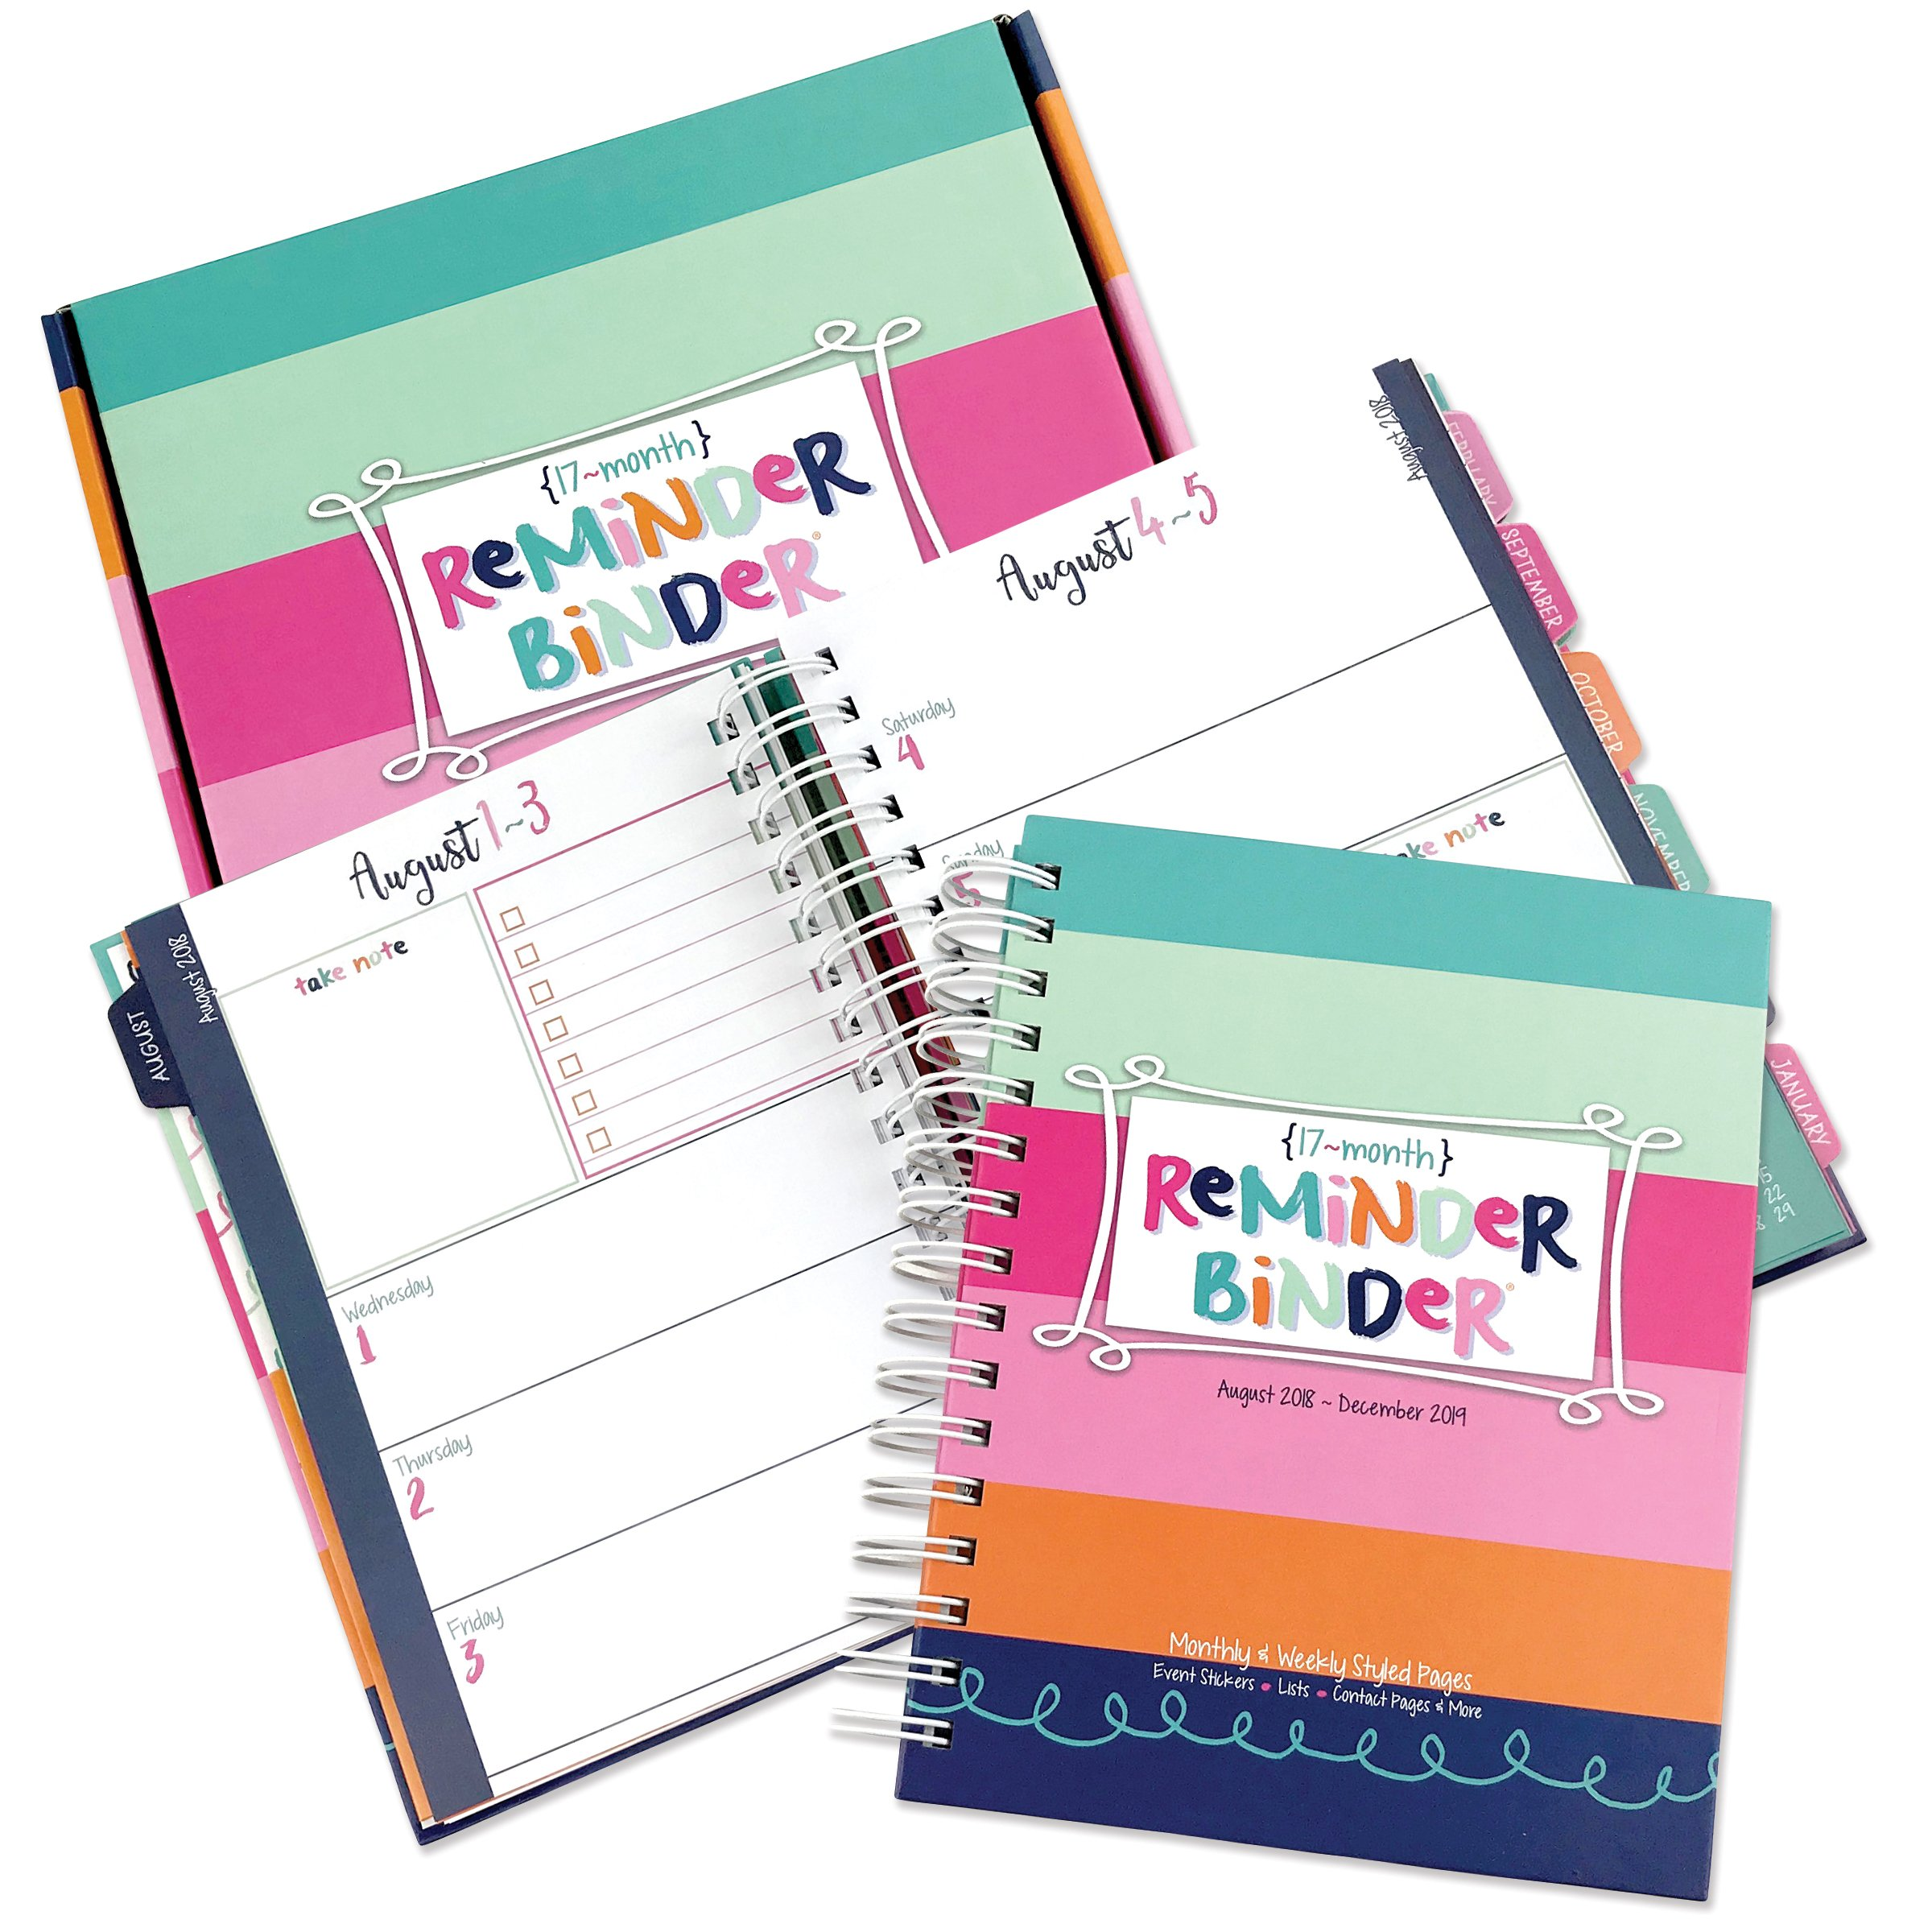 2018-2019 (17-Month) Planner with Weekly & Monthly Horizontal Layout, 6.5'' x 8.5'', Twin-Wire Binding, Hard Cover, Elastic Closure, Planner Stickers, to-Do Lists, Pockets & Dividers by Reminder Binder